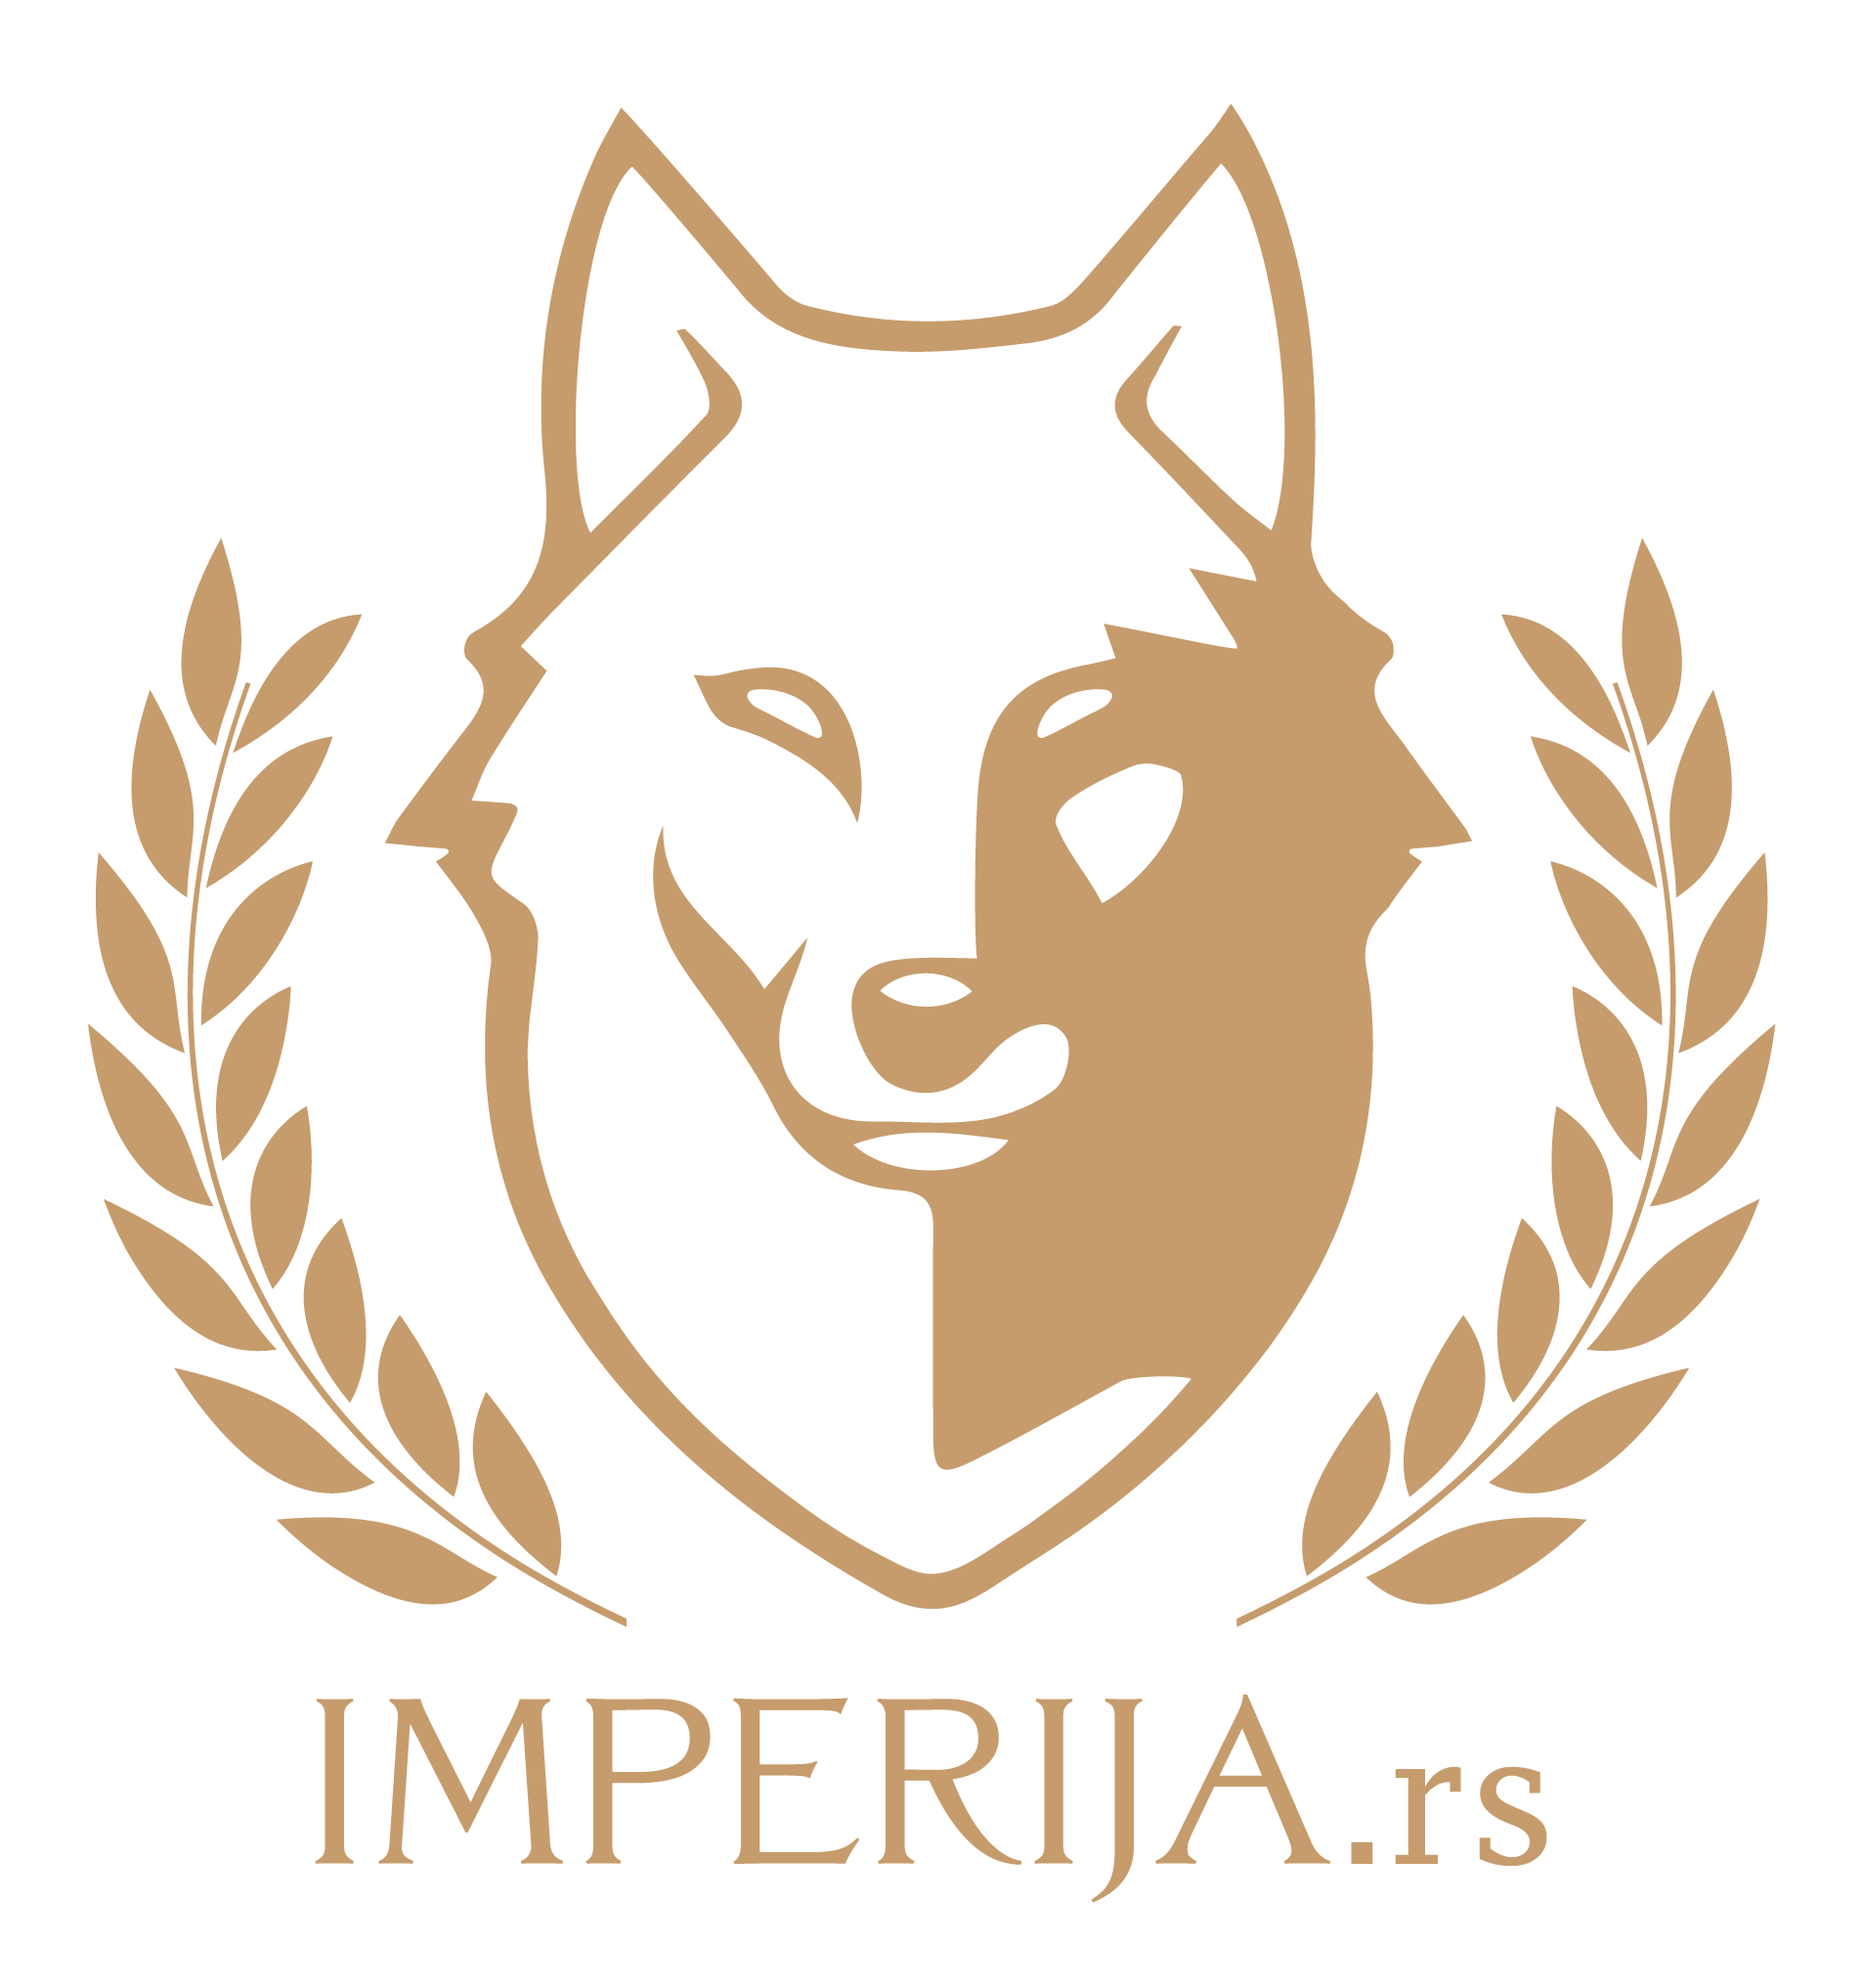 Logo IMPERIJA.rs